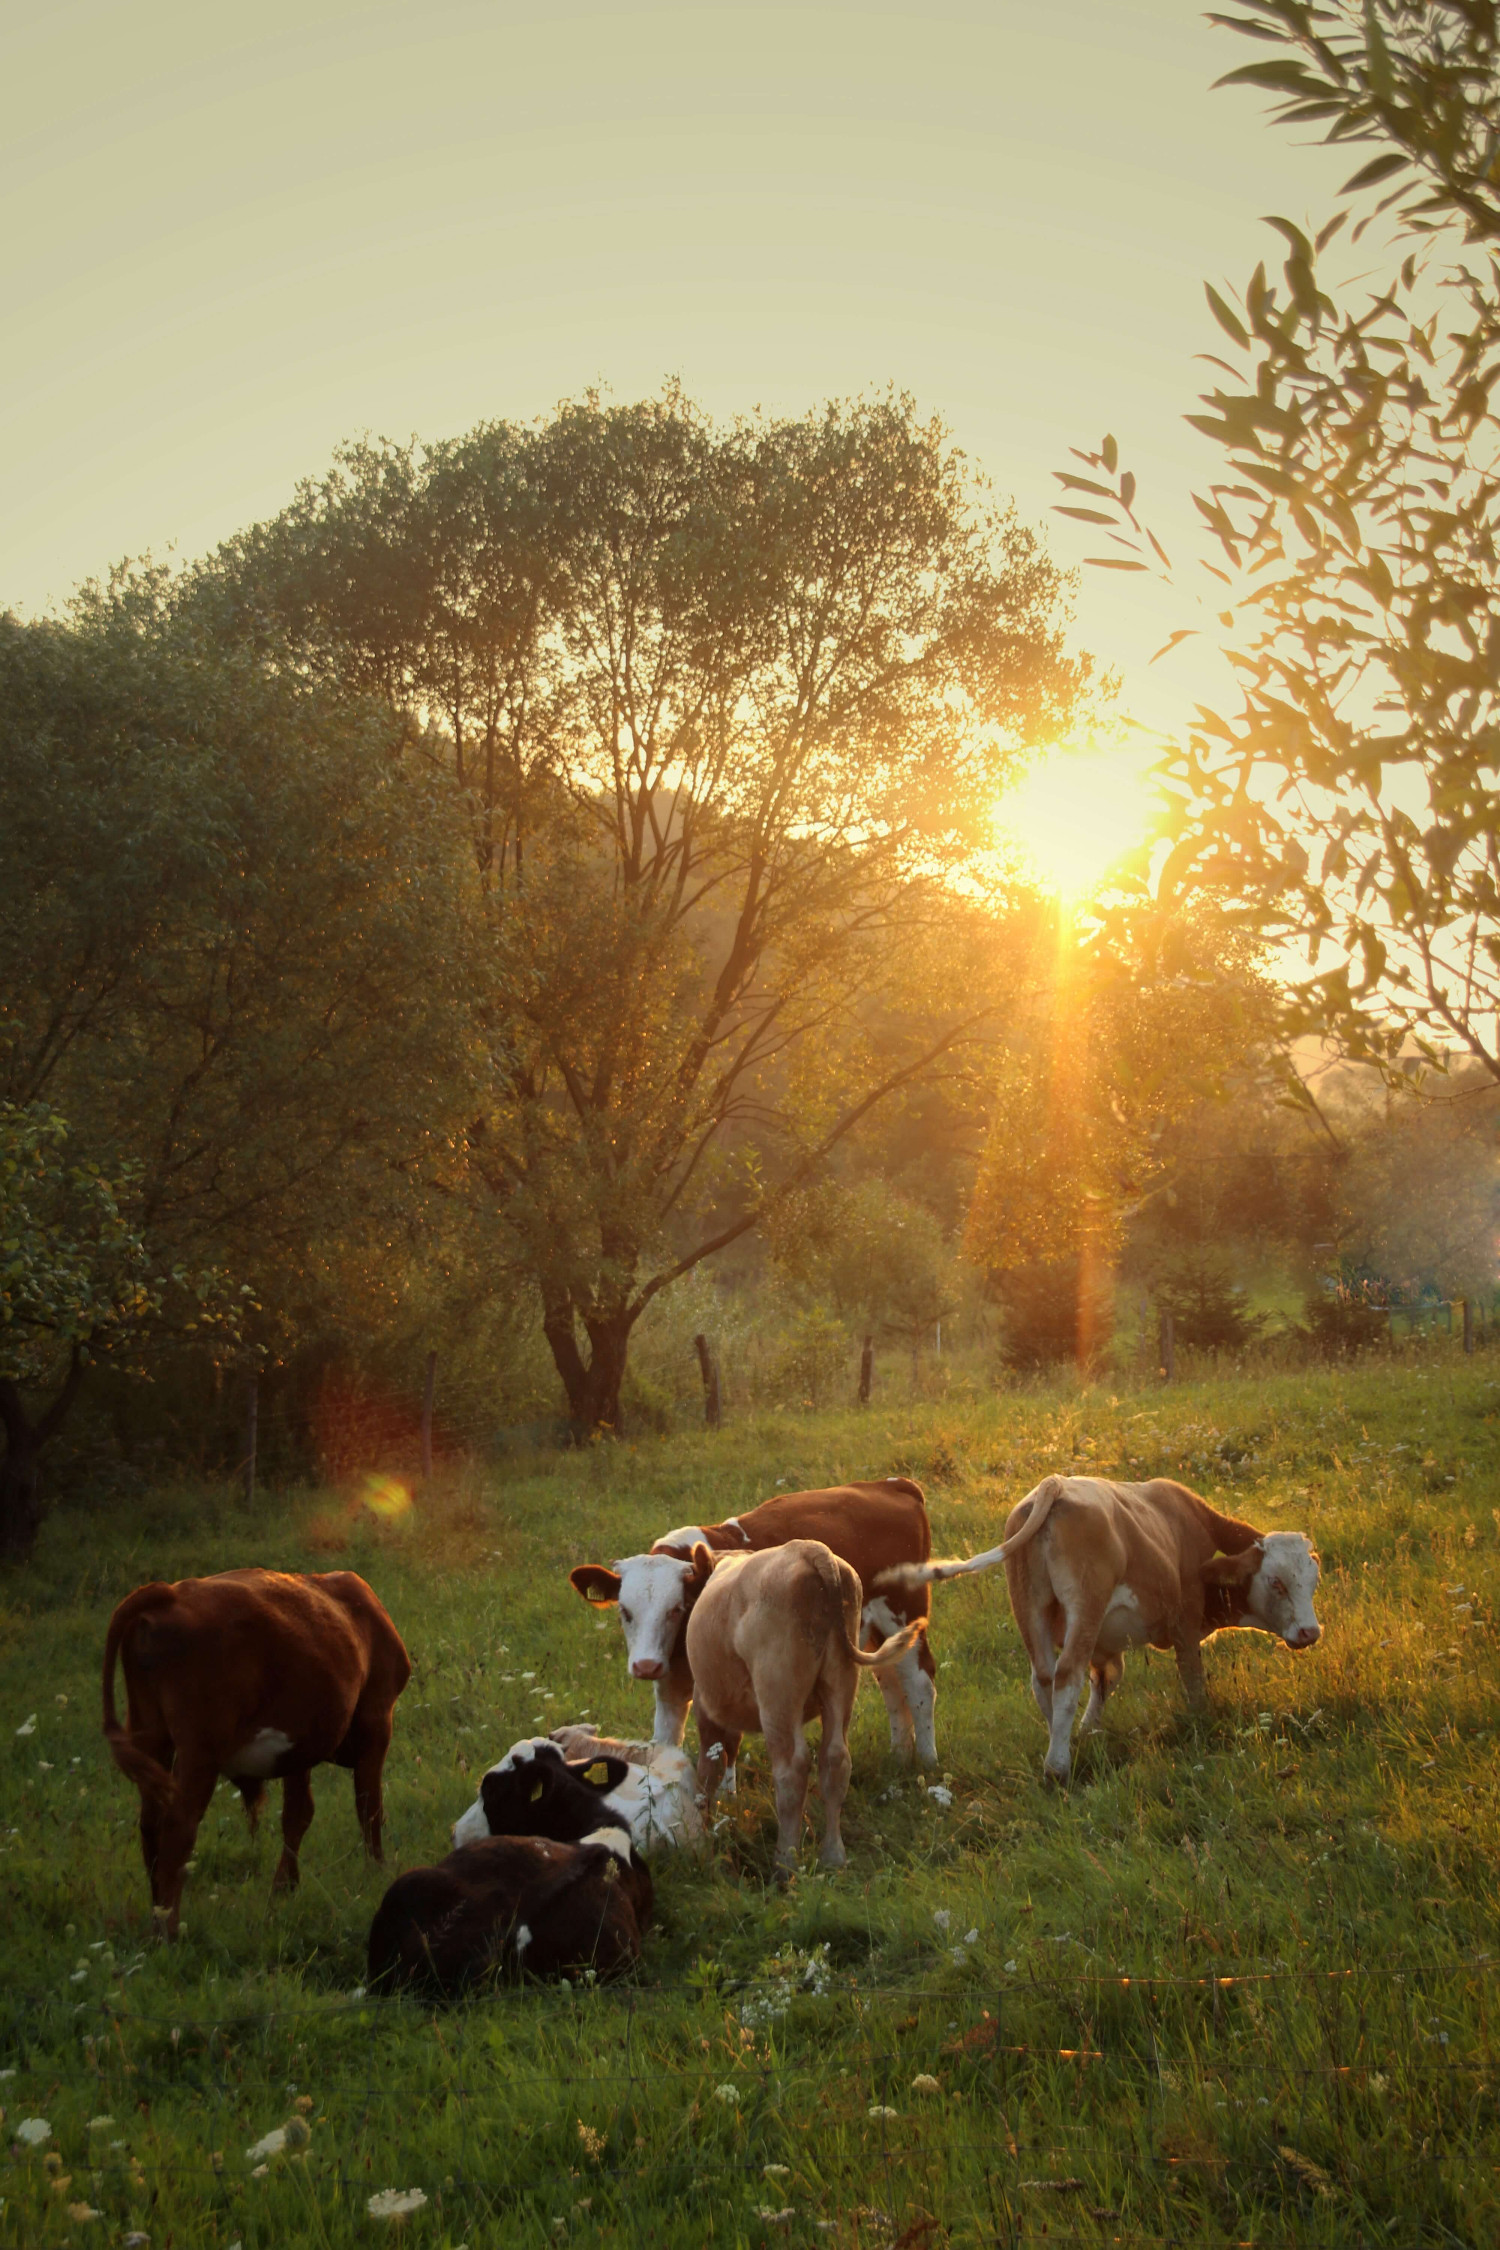 cows in field at sunrise